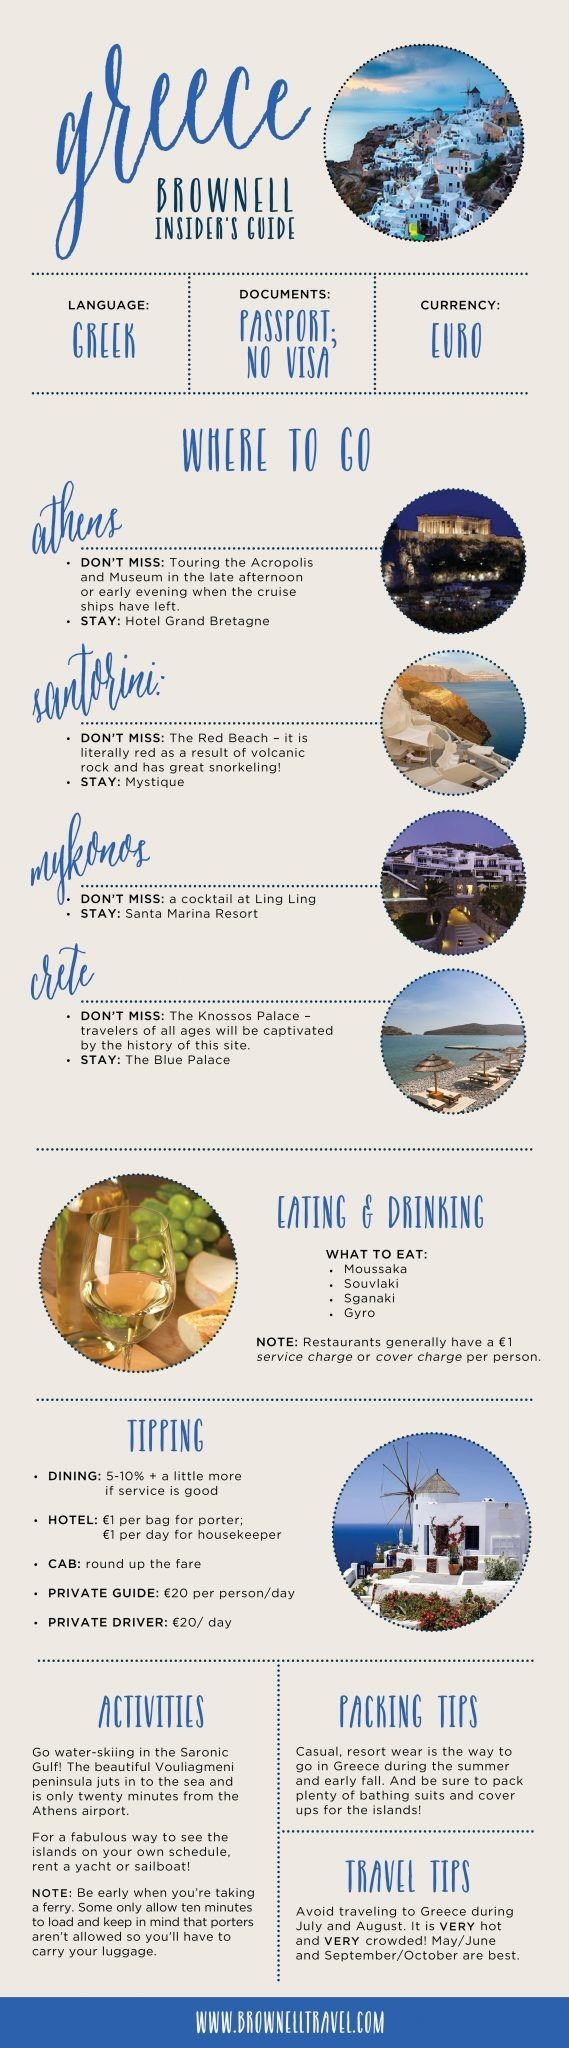 Greece Brownell Insider's Guide #Infographics http://tracking.publicidees.com/clic.php?progid=515&partid=48172&dpl=http%3A%2F%2Fsejour.govoyages.com%2Fvacances-voyage-reunion-2%2F